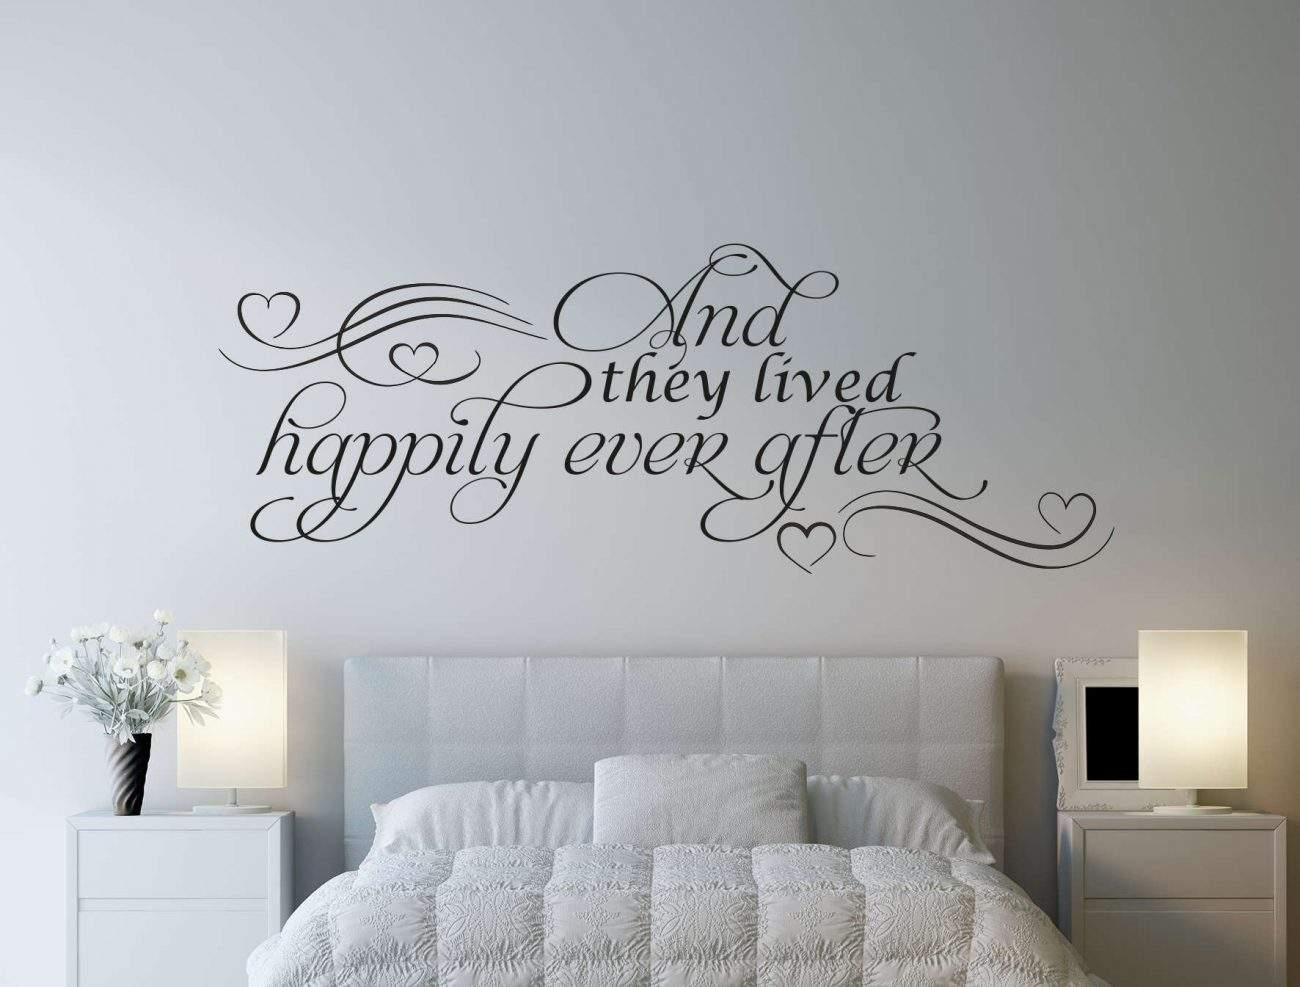 And they lived happily ever after wall decal sticker